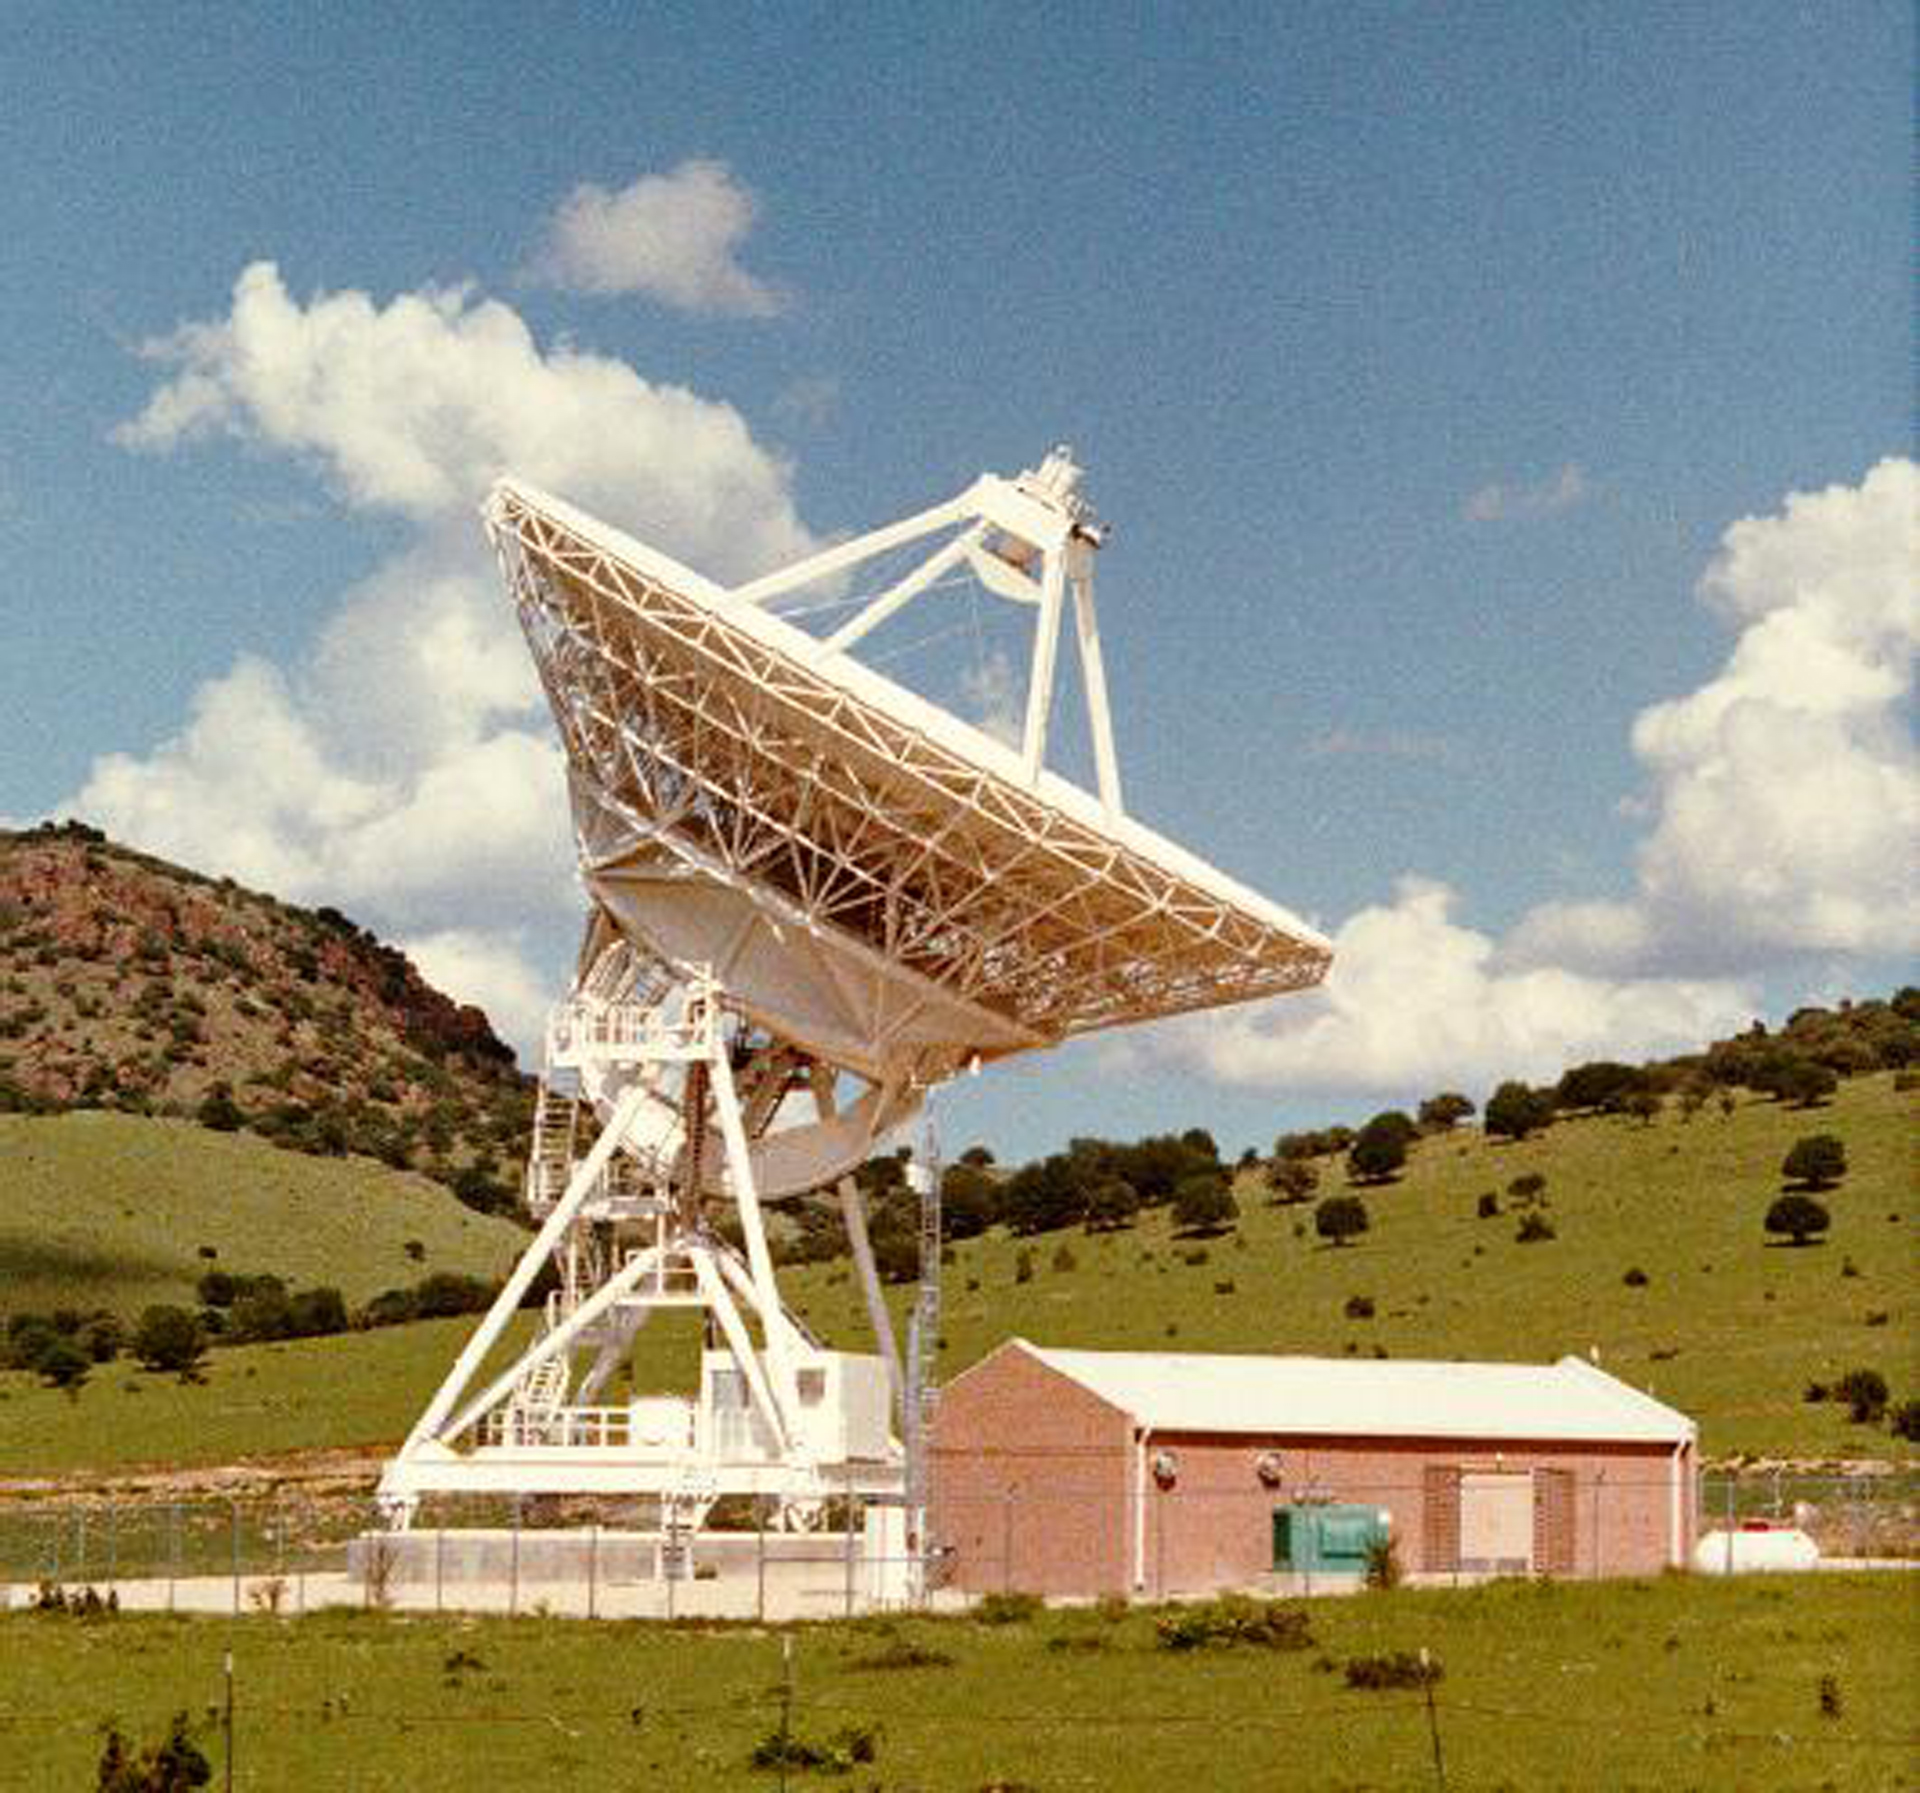 VLBA station in Fort Davis, Texas